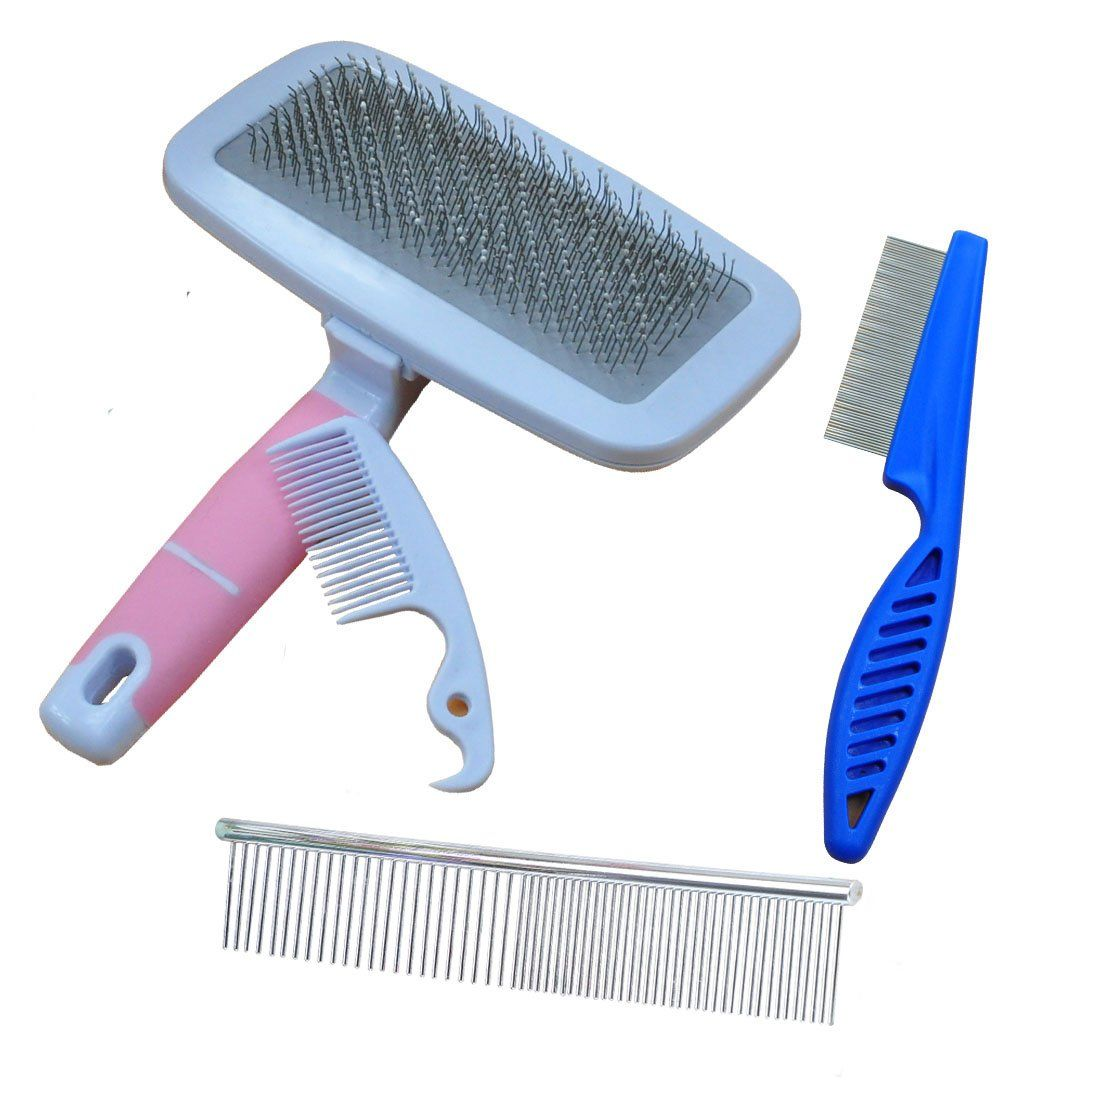 SONKI Brushs for Dogs and Cats Pet Grooming Brush Easily